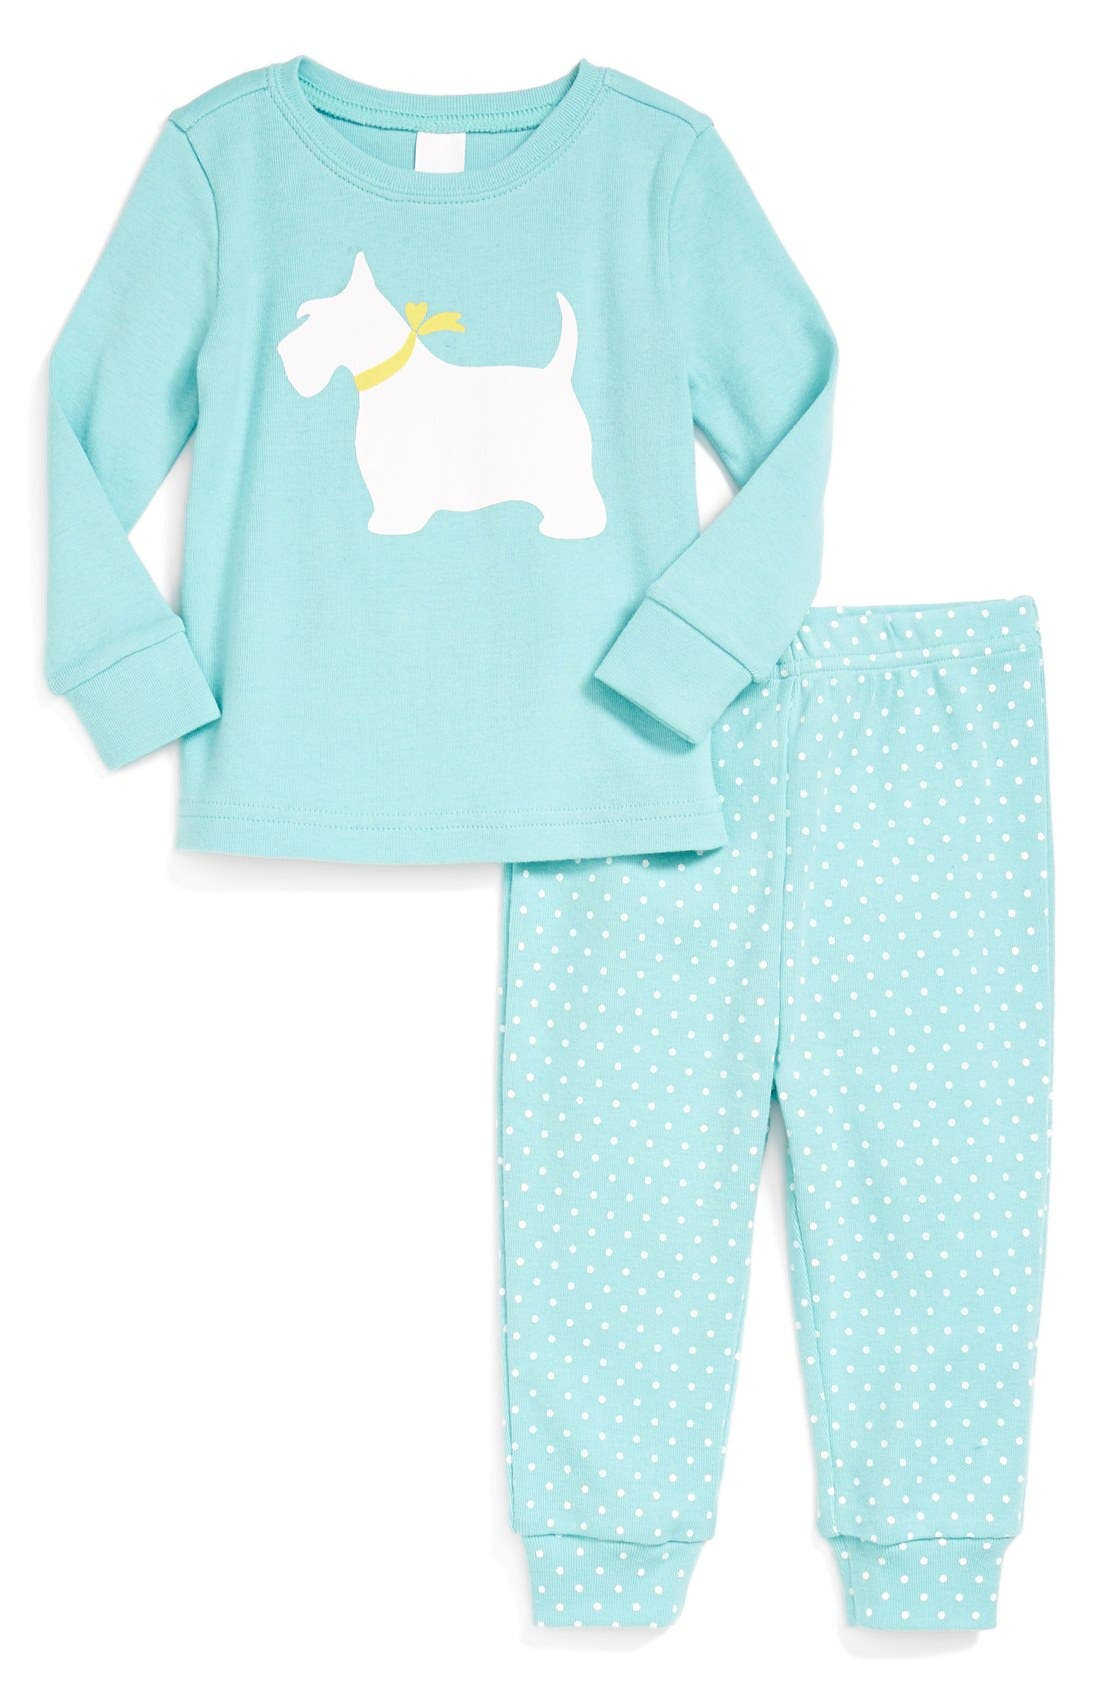 Alternate Image 1 Selected - Tucker + Tate Fitted Two-Piece Pajamas (Baby Girls)